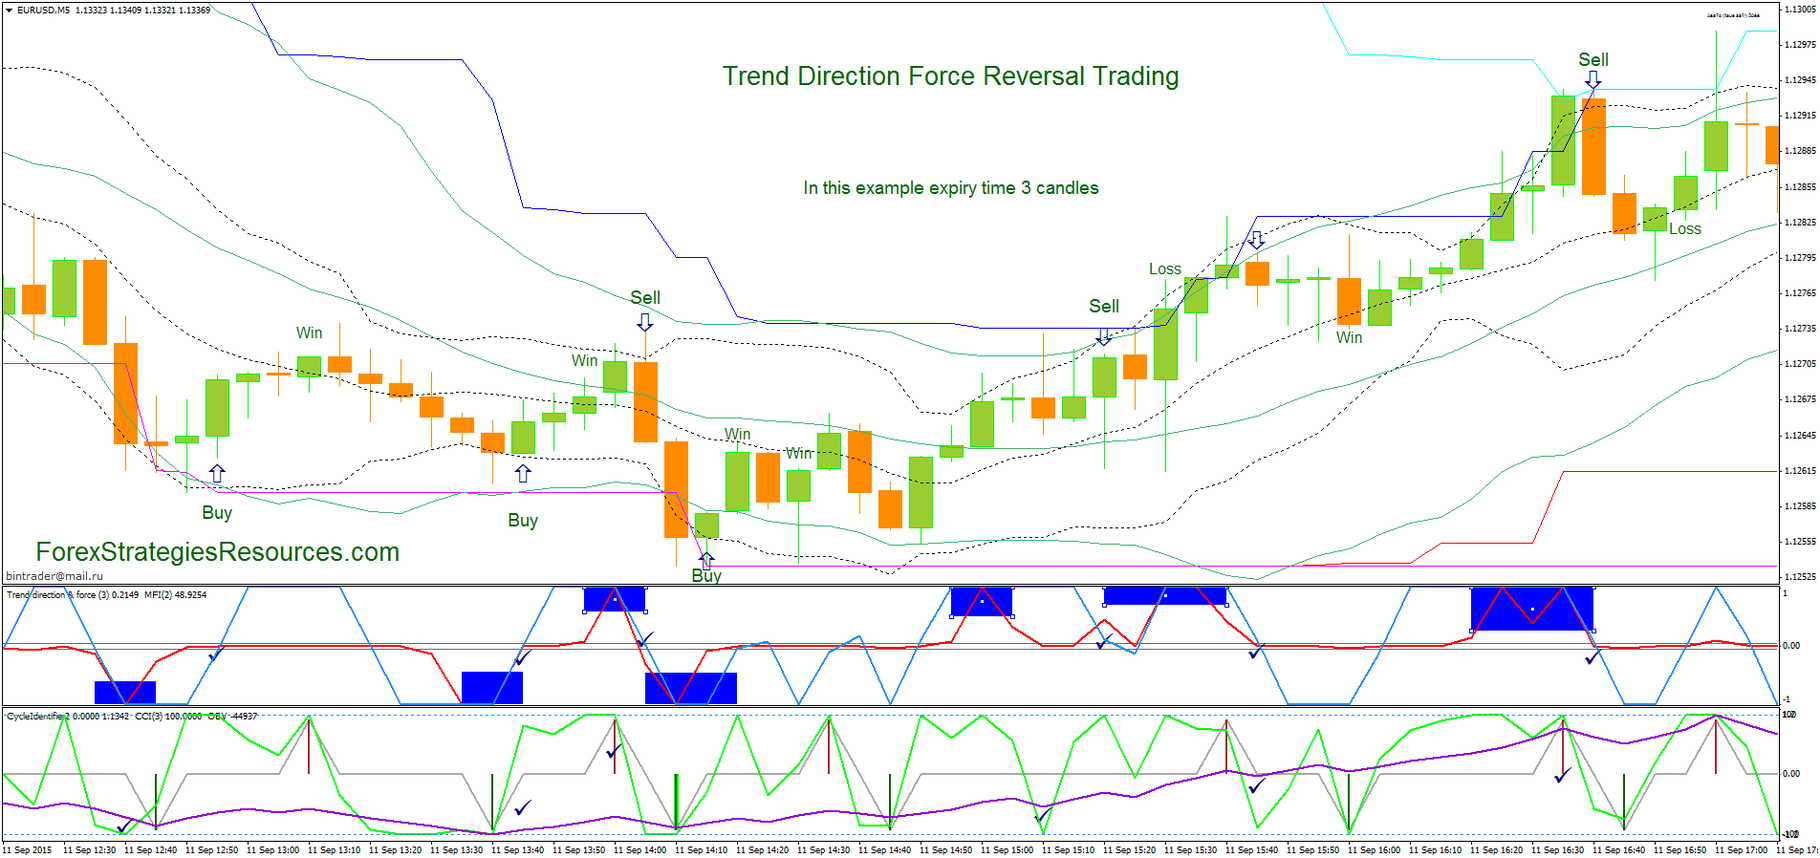 trend direction force reversal trading forex strategies forex resources forex trading